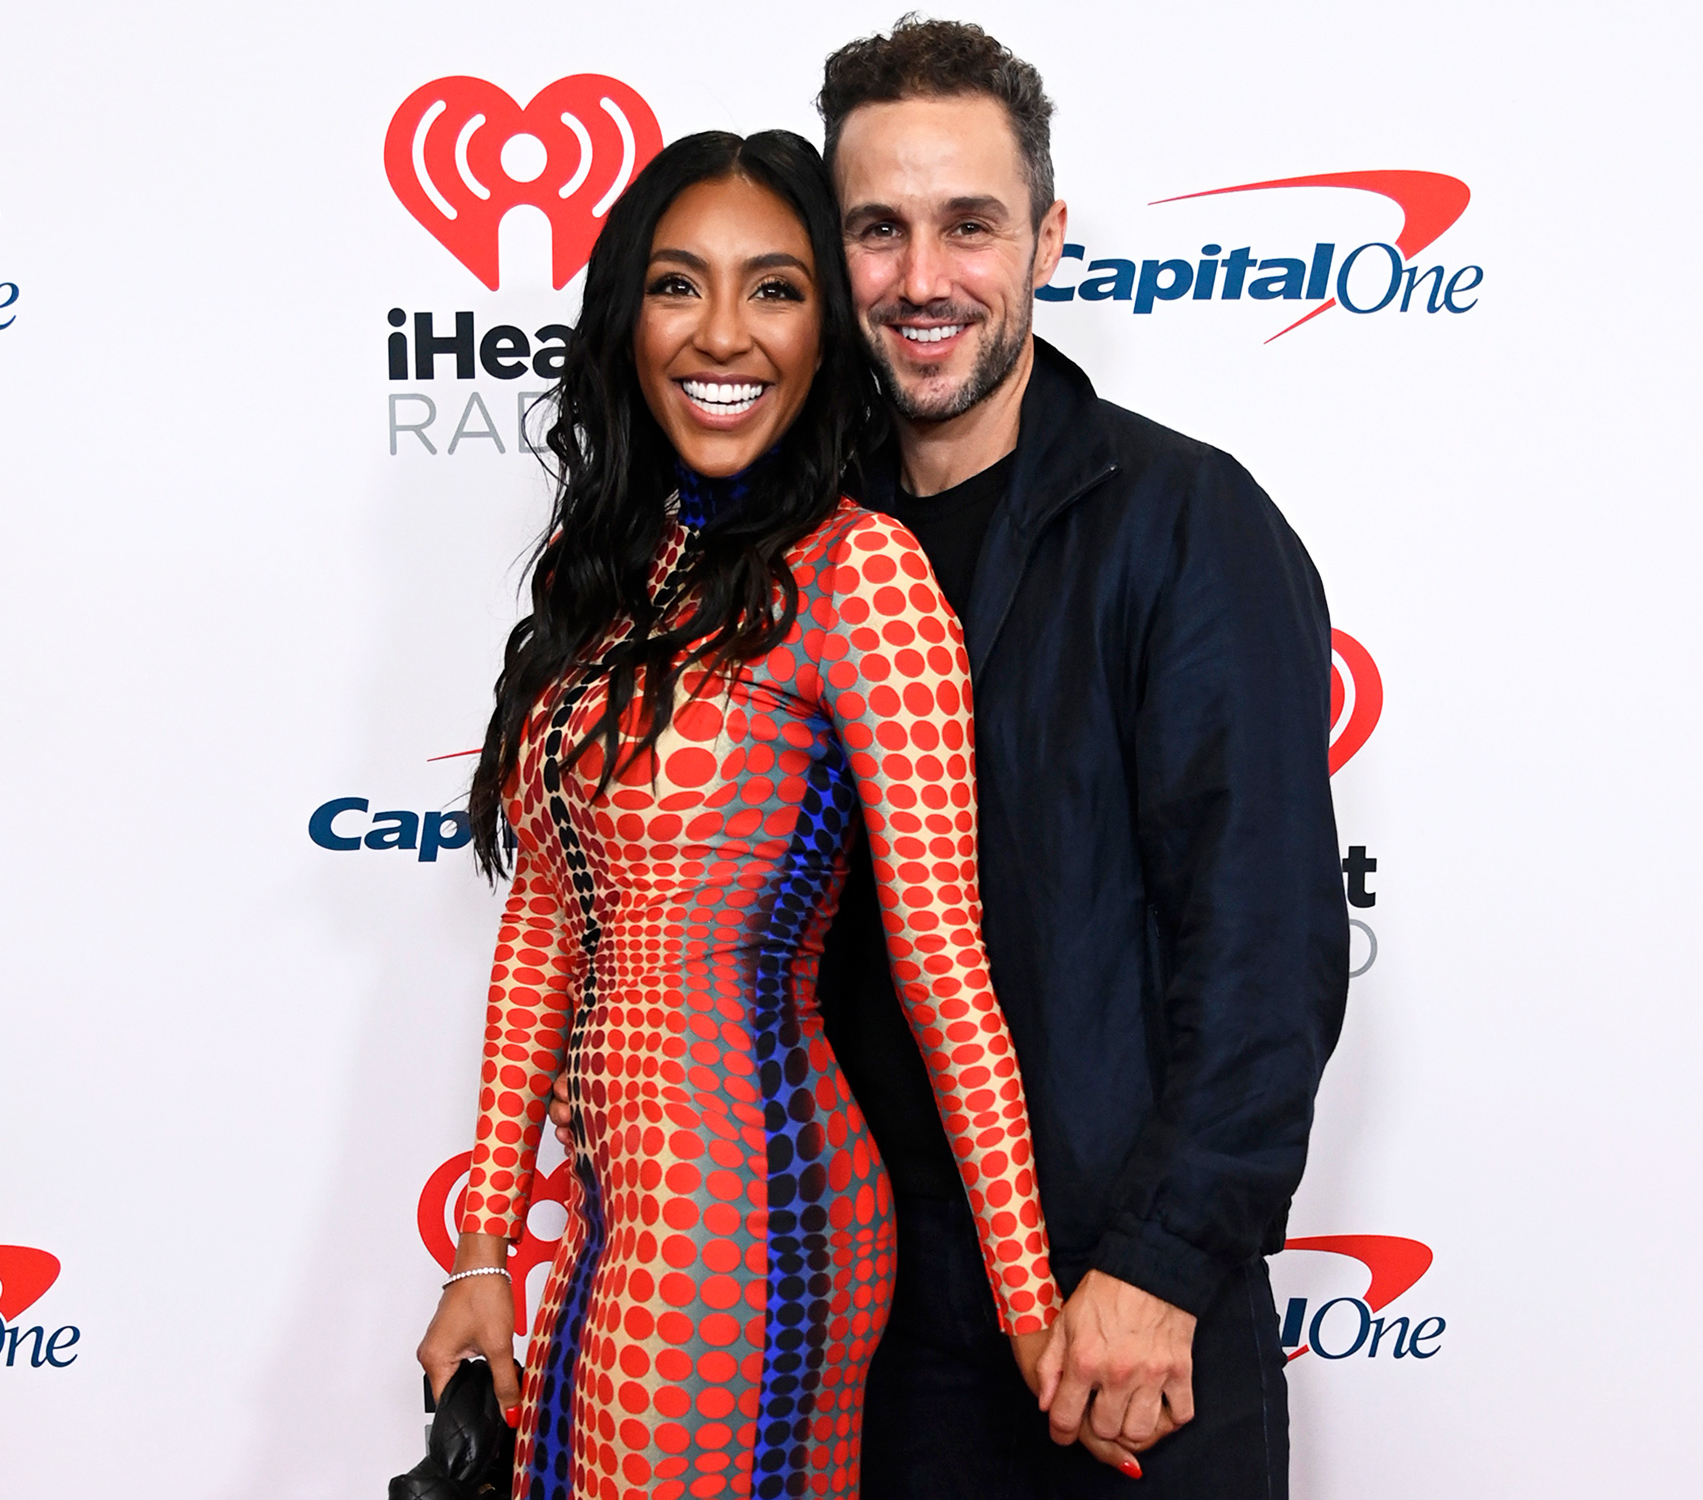 (L-R) Tayshia Adams and Zac Clark attend the 2021 iHeartRadio Music Festival on September 18, 2021 at T-Mobile Arena in Las Vegas, Nevada.